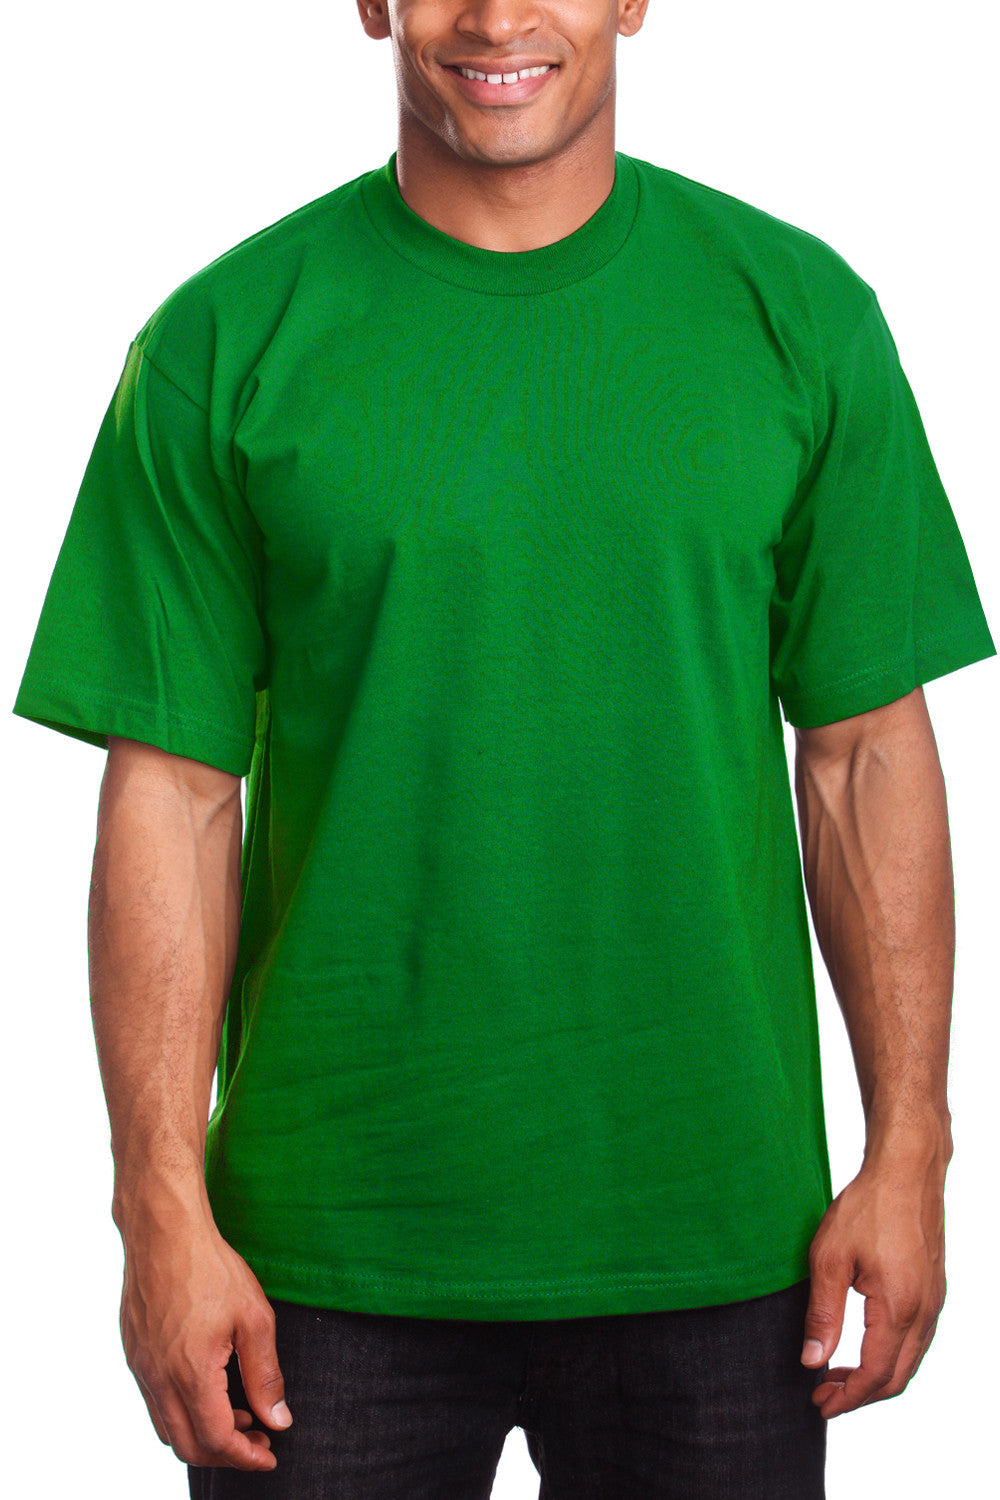 Super Heavy T-shirt: Tall Sizes - Pro 5 Apparel